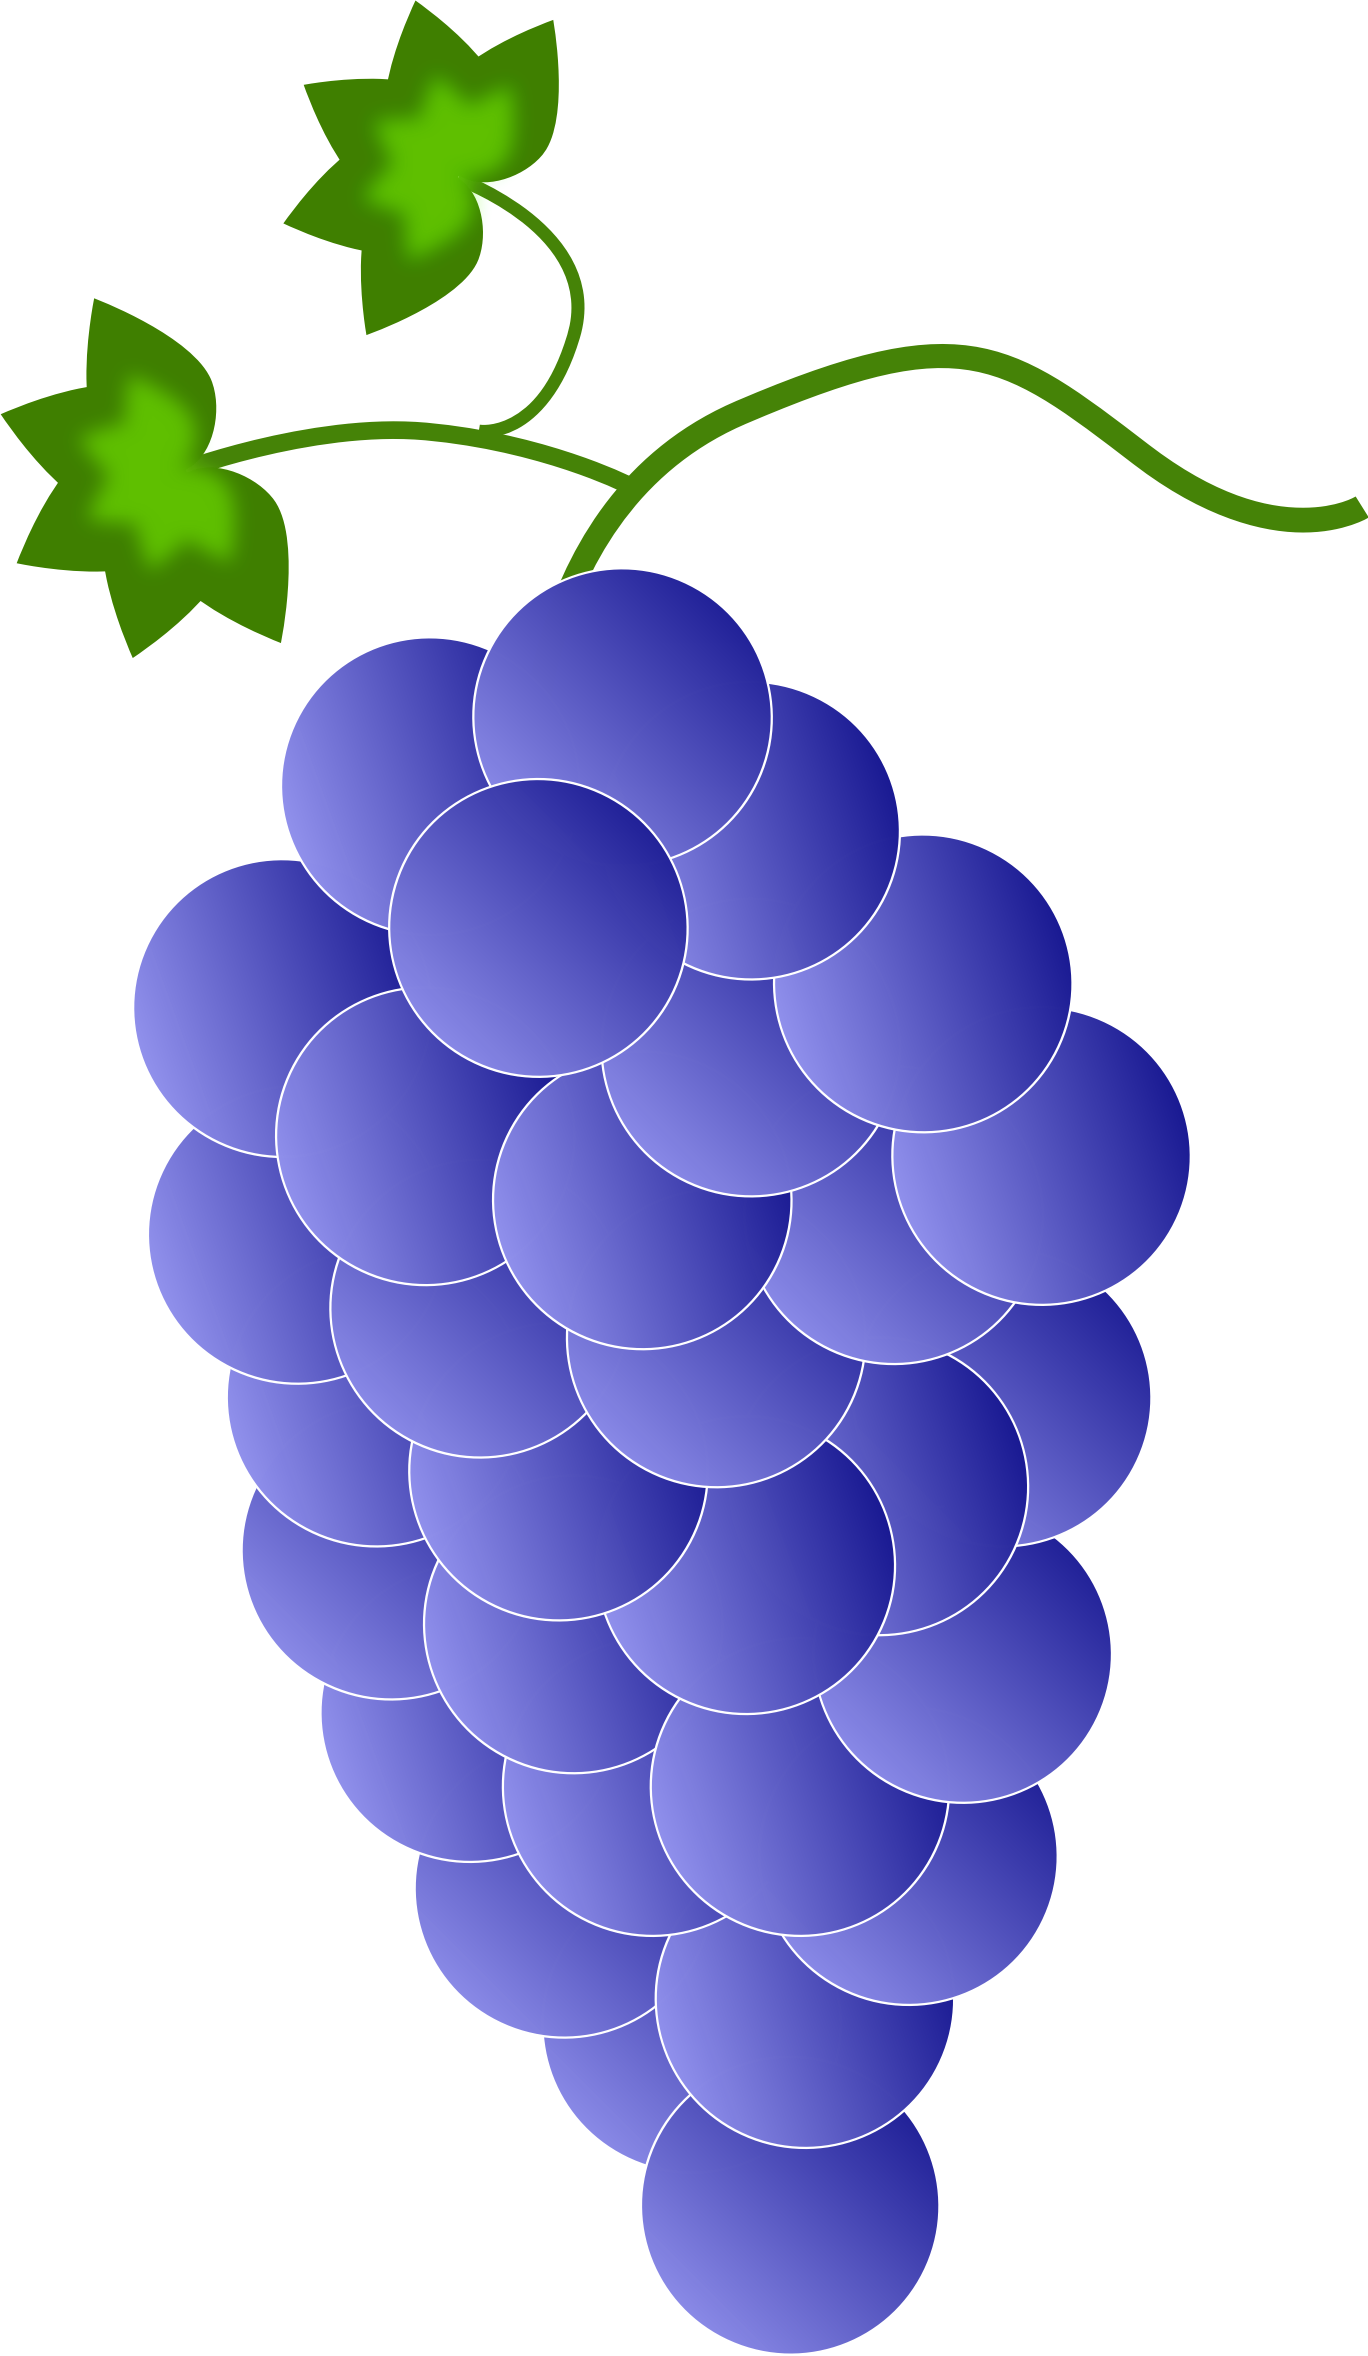 Colored Grapes - Violet \ Blue by Astro